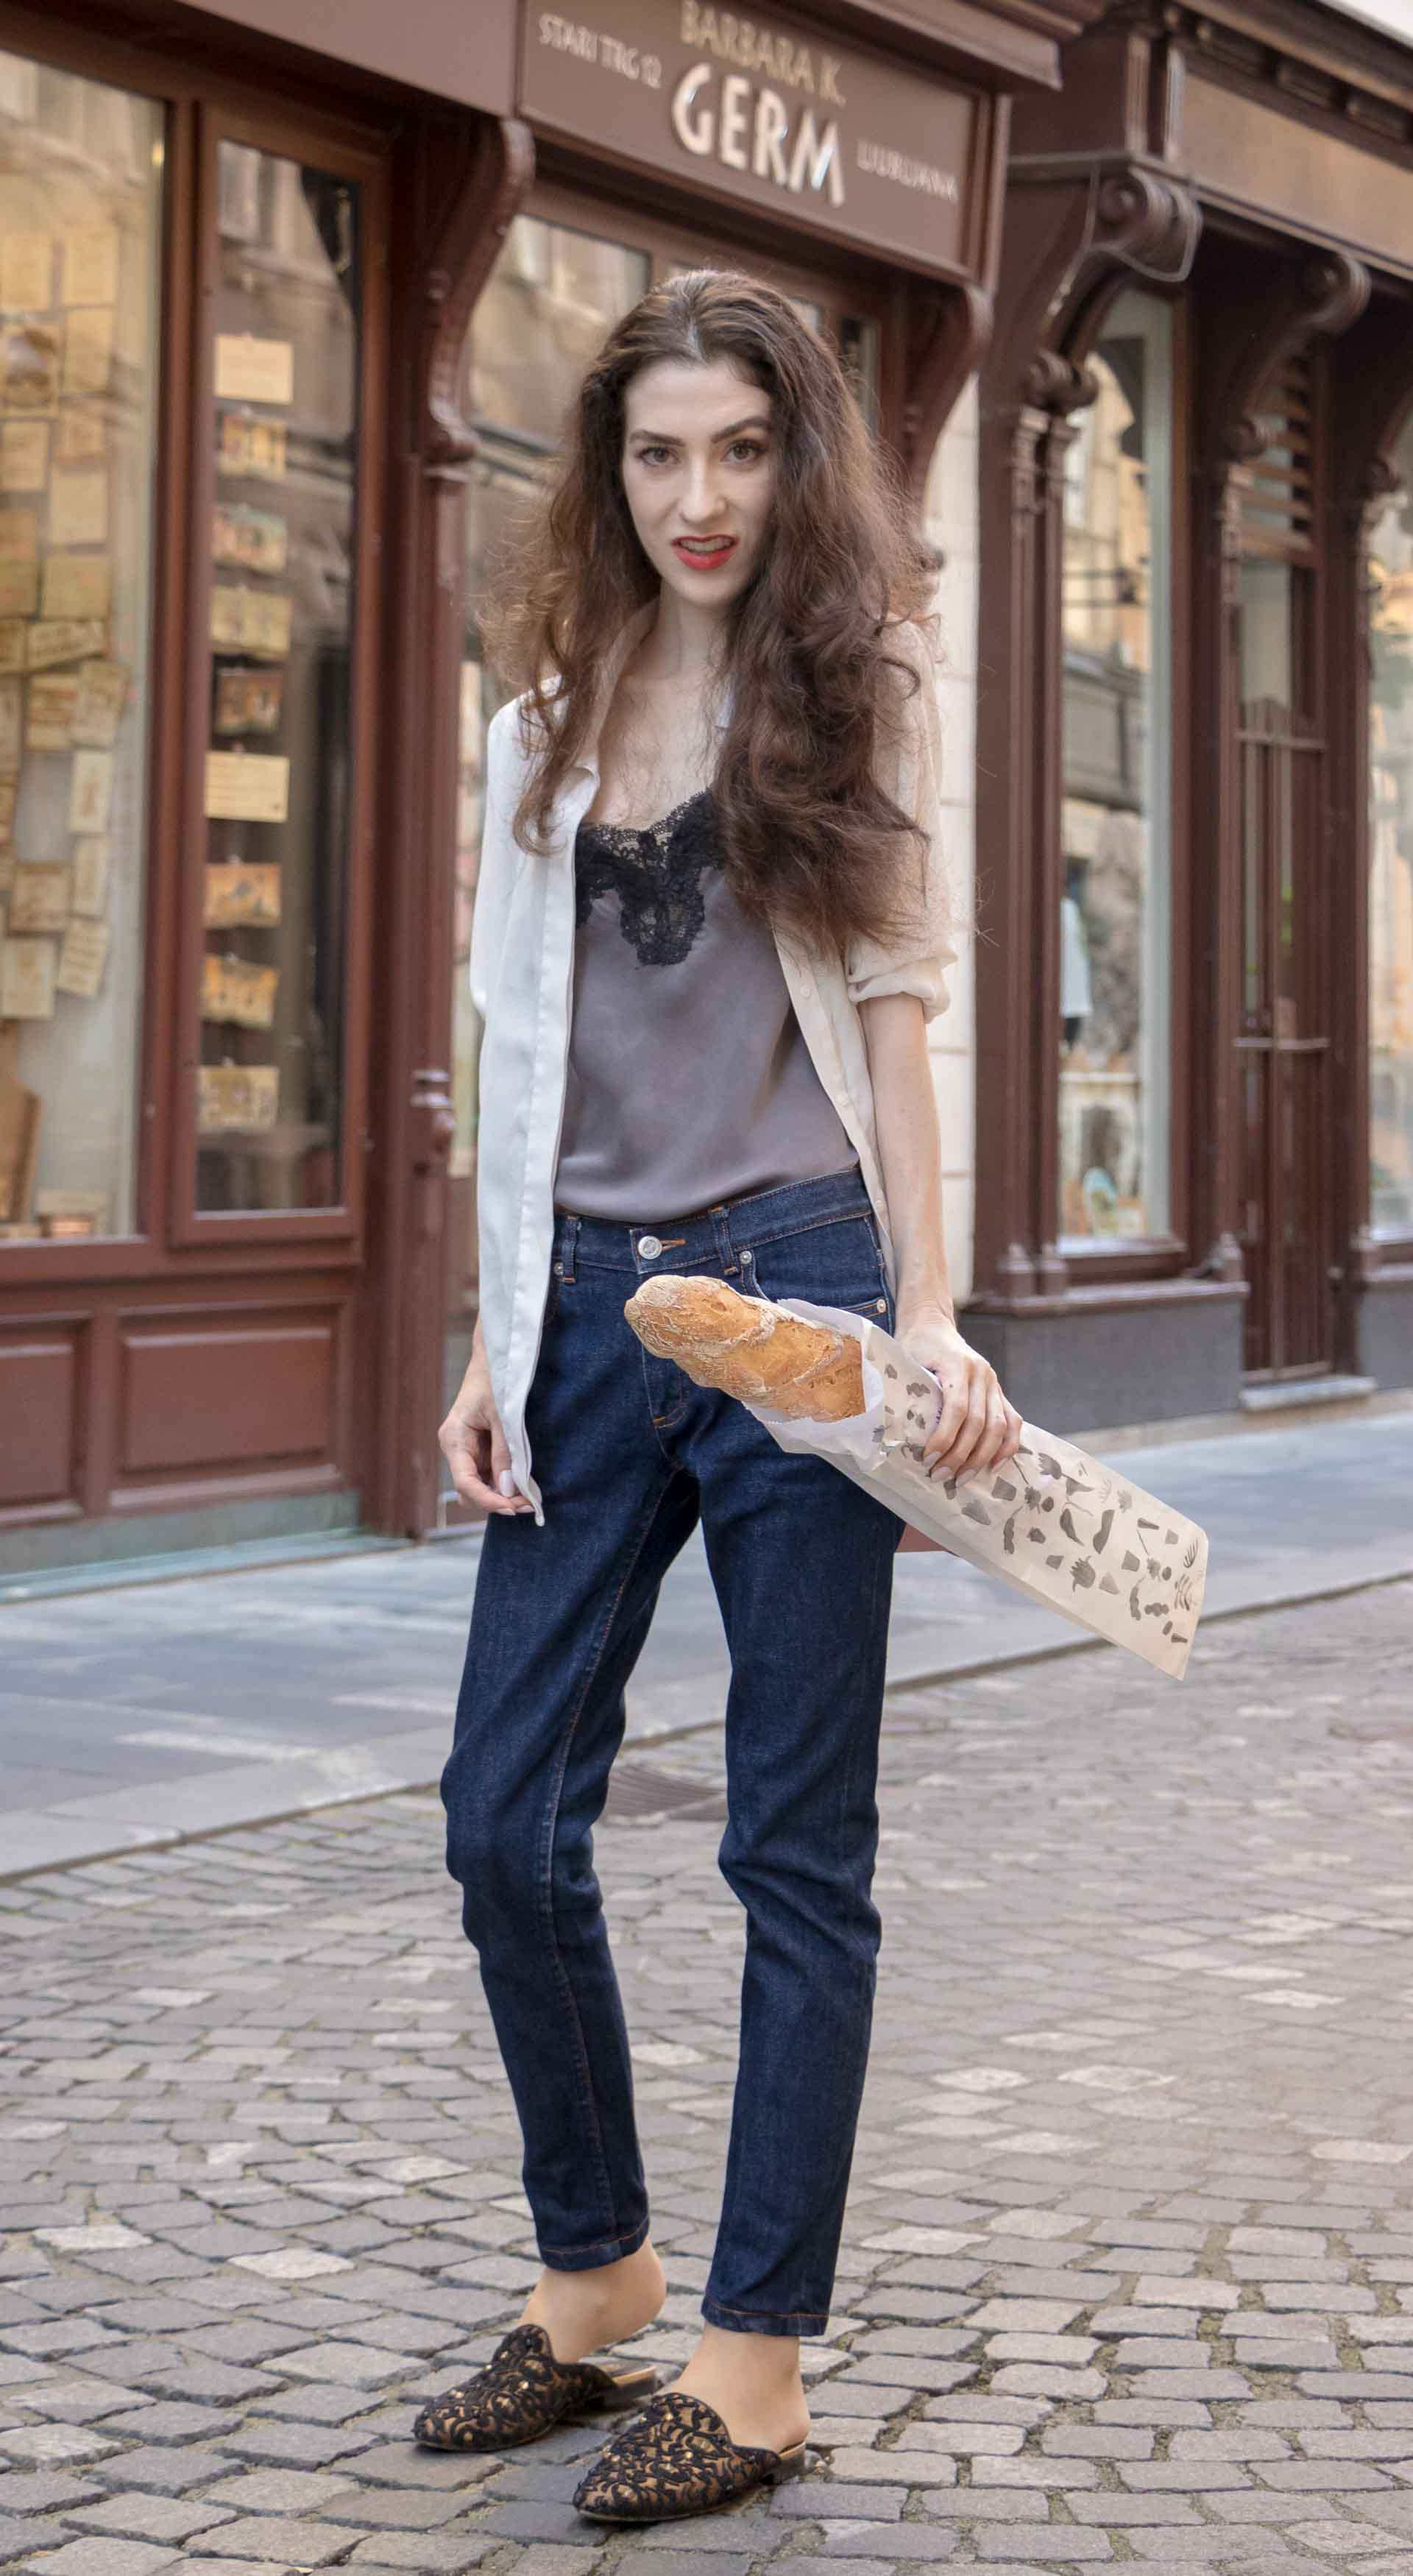 Fashion Blogger Veronika Lipar of Brunette from Wall Street wearing white sheer shirt with transparent back from Sandro Paris, grey silk slip top, A.P.C. dark denim jeans, mules, pink Furla shoulder bag, on her way from the bakery